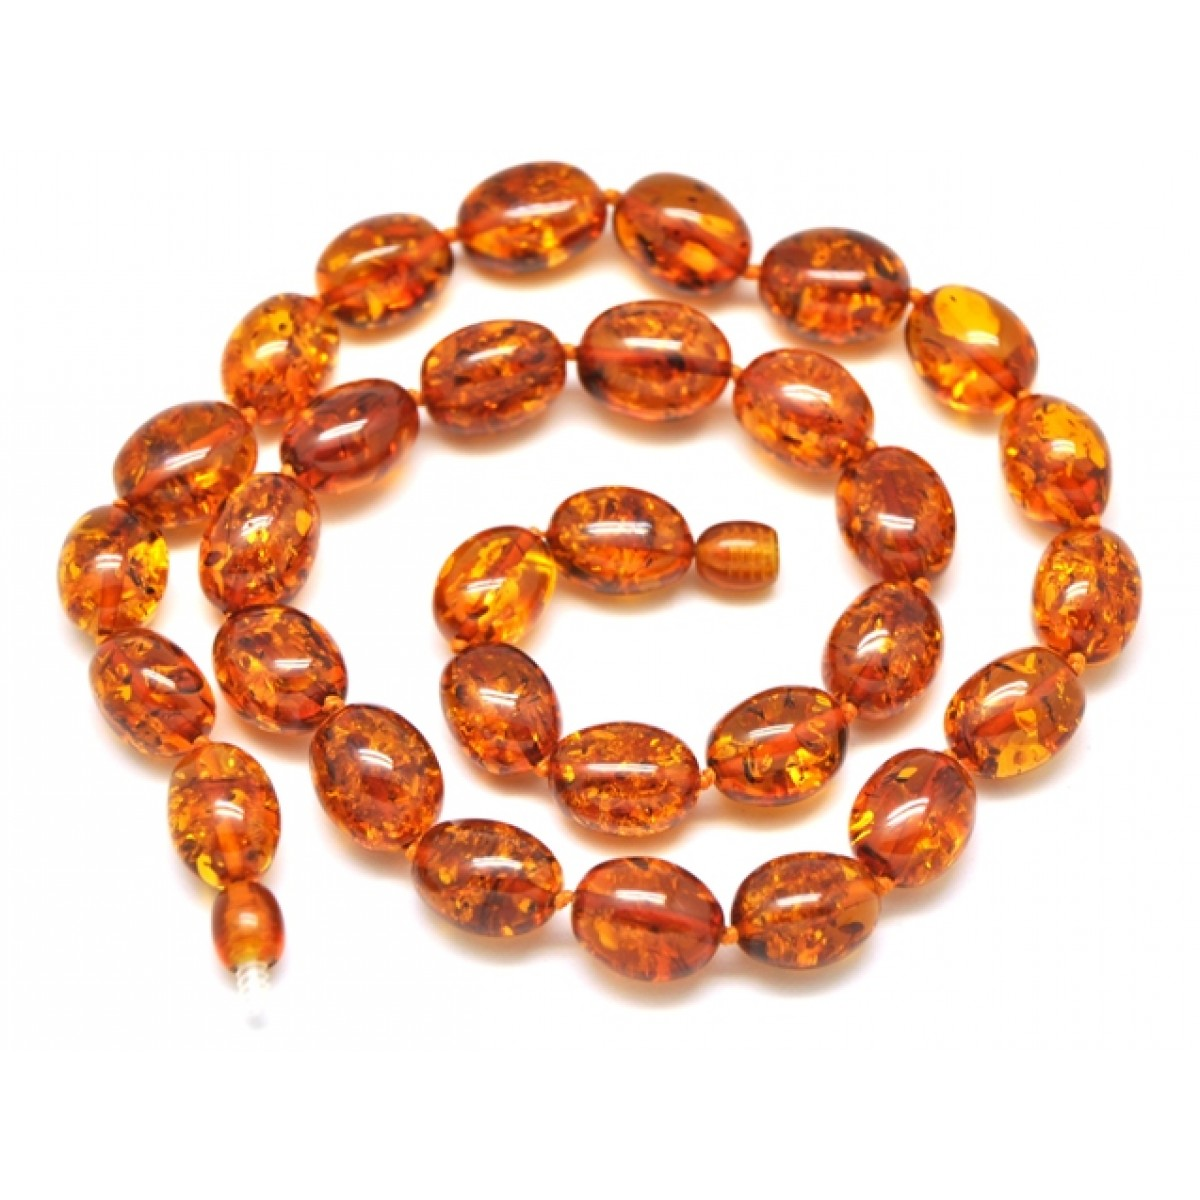 Olive Garden With Amberstone: Cognac Olive Shape Baltic Amber Necklace - 149.80€